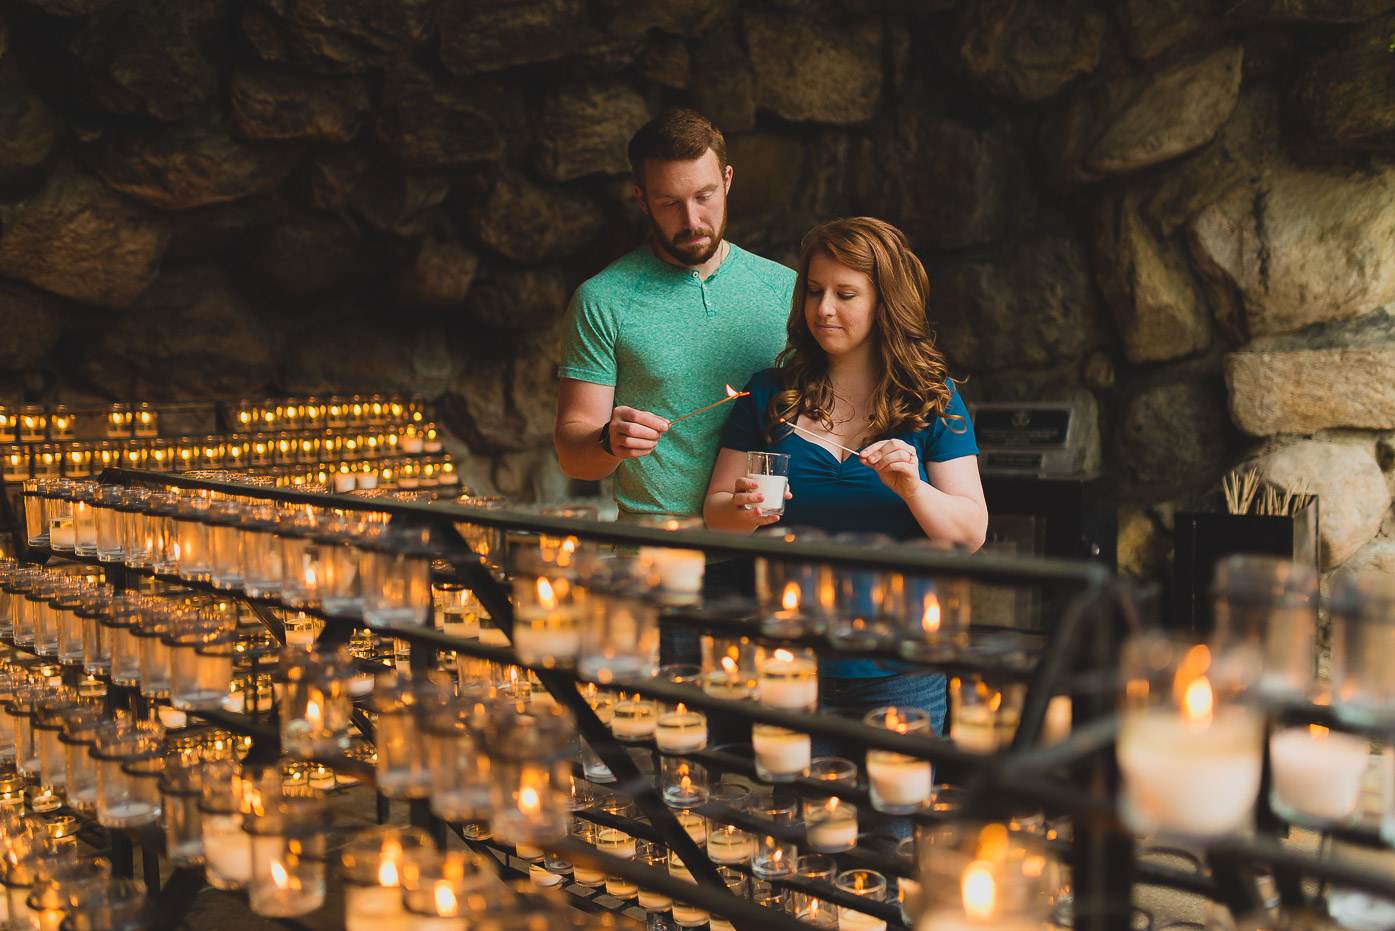 Grotto Notre Dame Candles